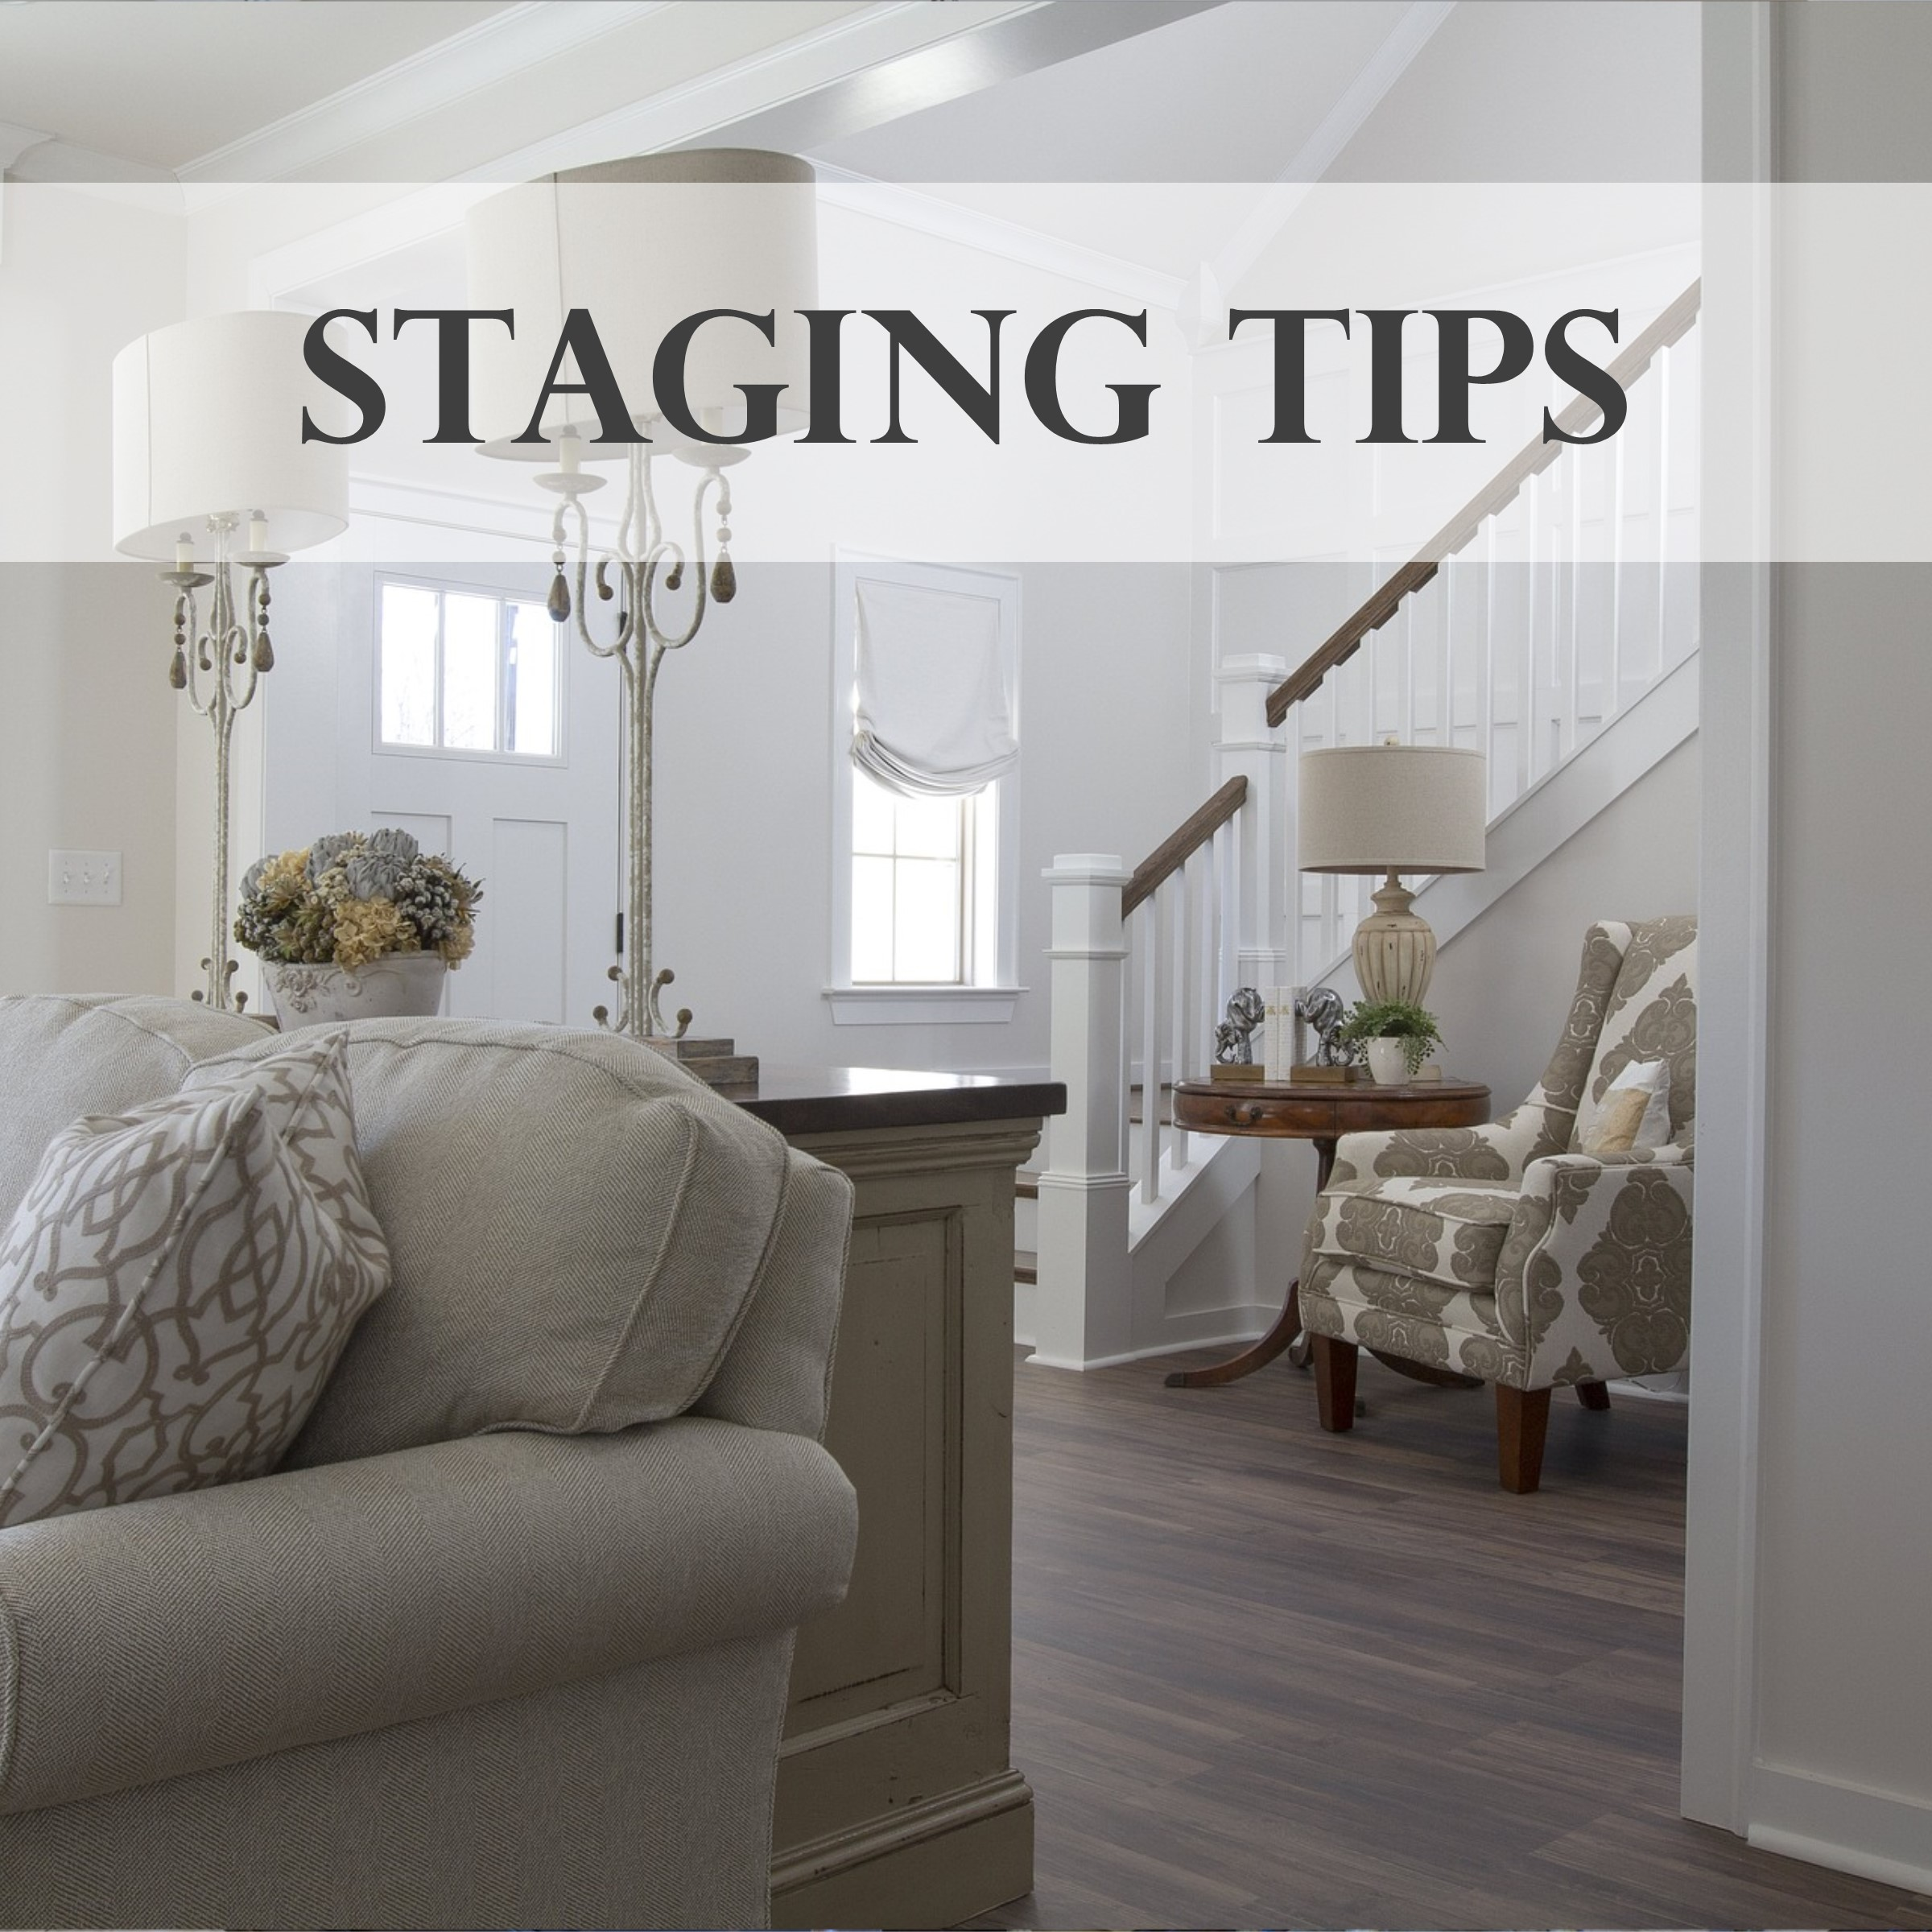 Home staging tips to sell my Maine home fast - real estate leader, maine homes for sale, maine real estate, maine realtors, font